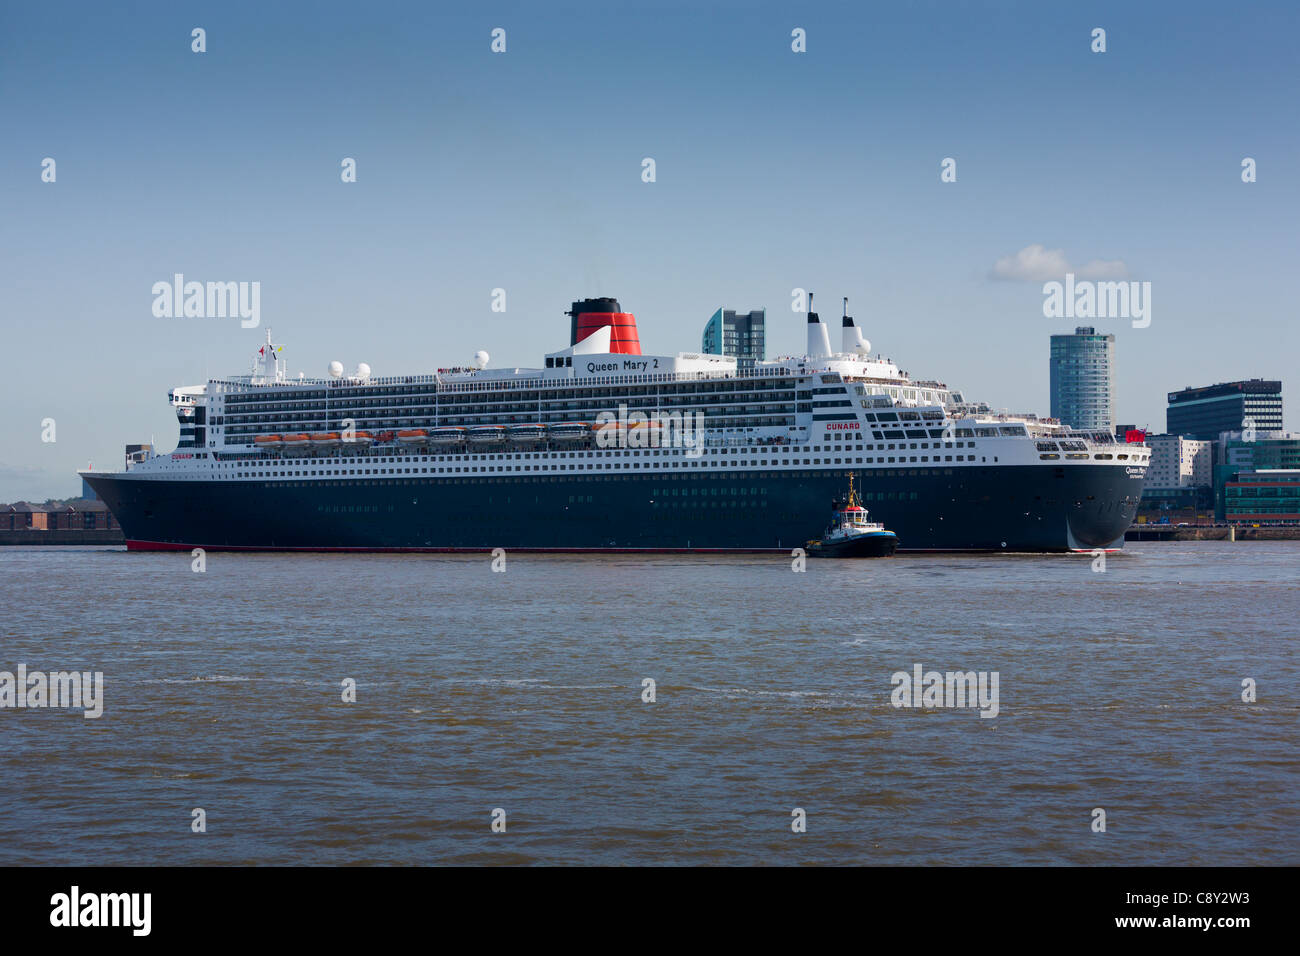 Queen Mary 2 docking in the River Mersey, Liverpool - Stock Image